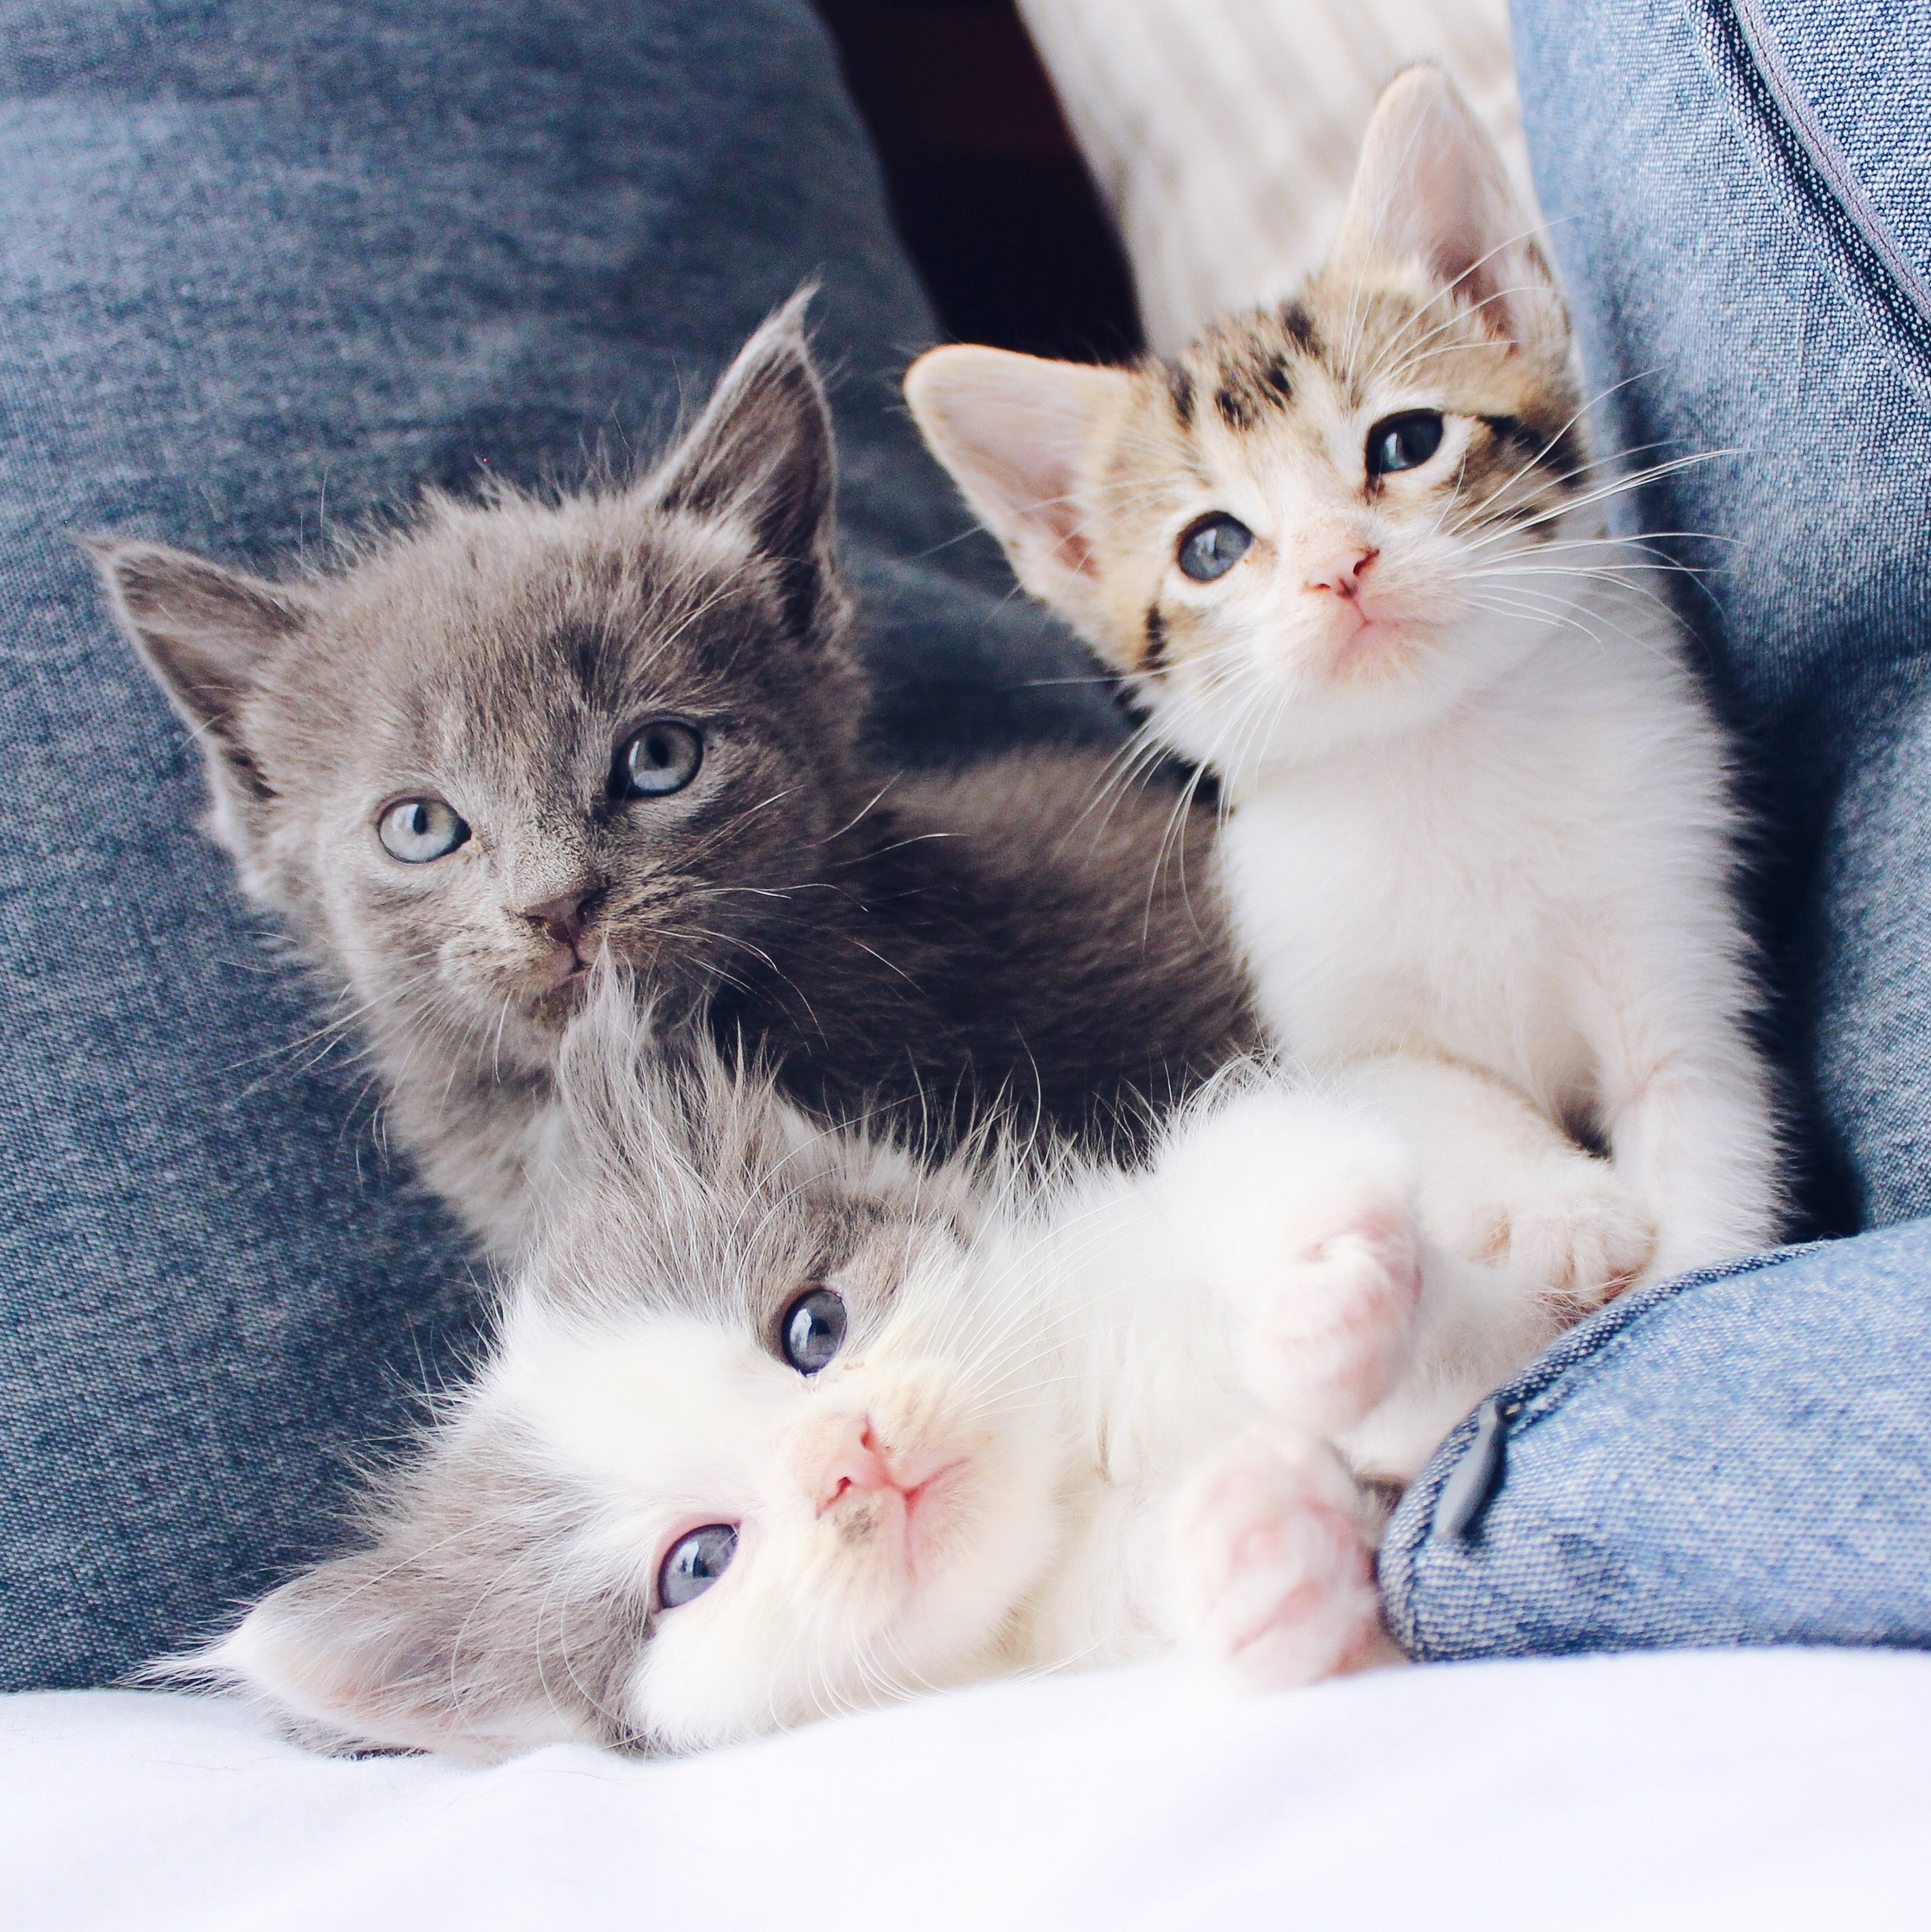 Cute kittens on a couch to improve web content.